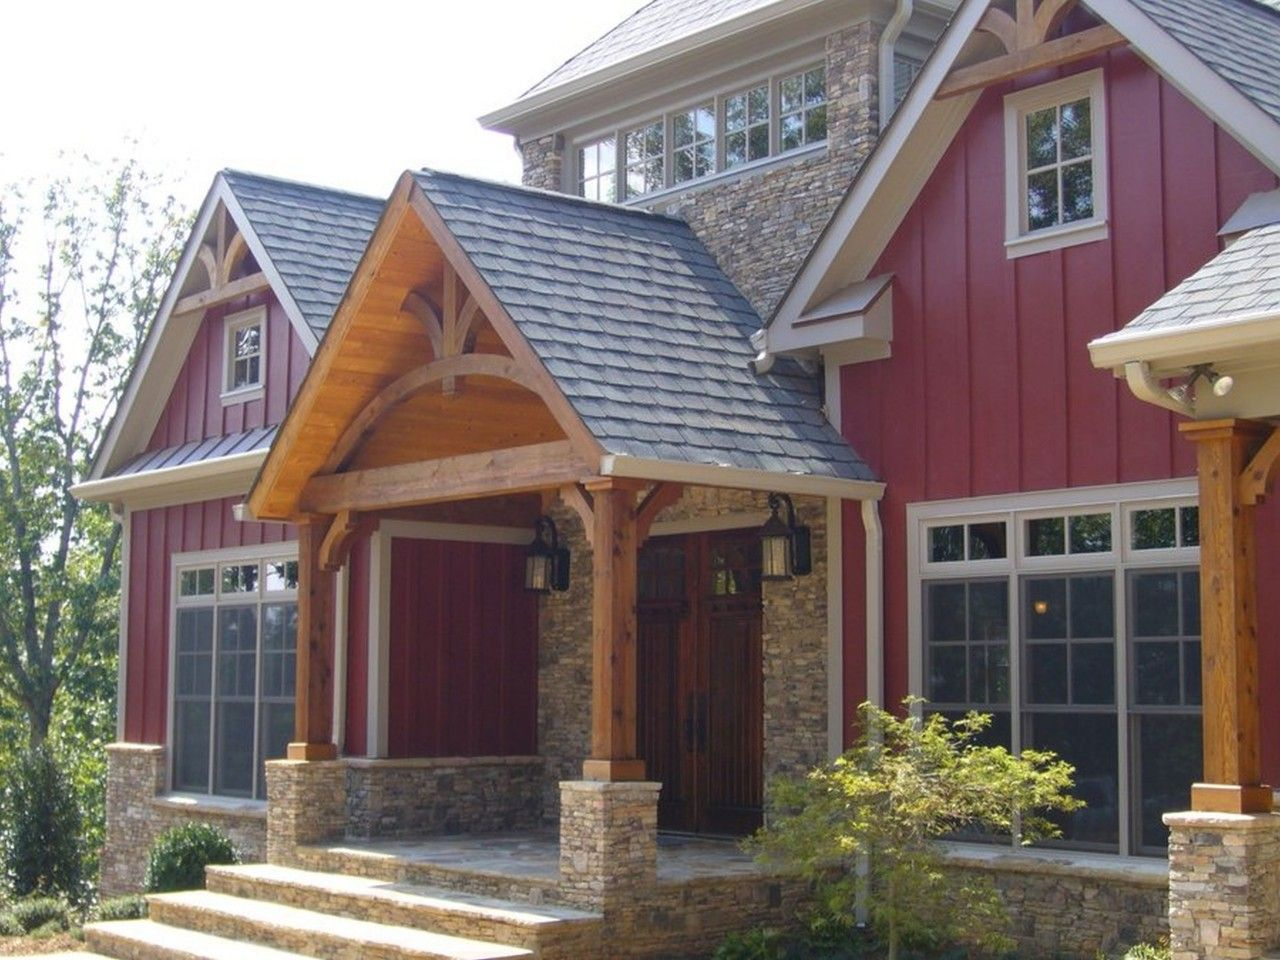 Rustic country house plans - Craftsman Style Porch Roof Designs Amusing House Plans Exciting Single Story House